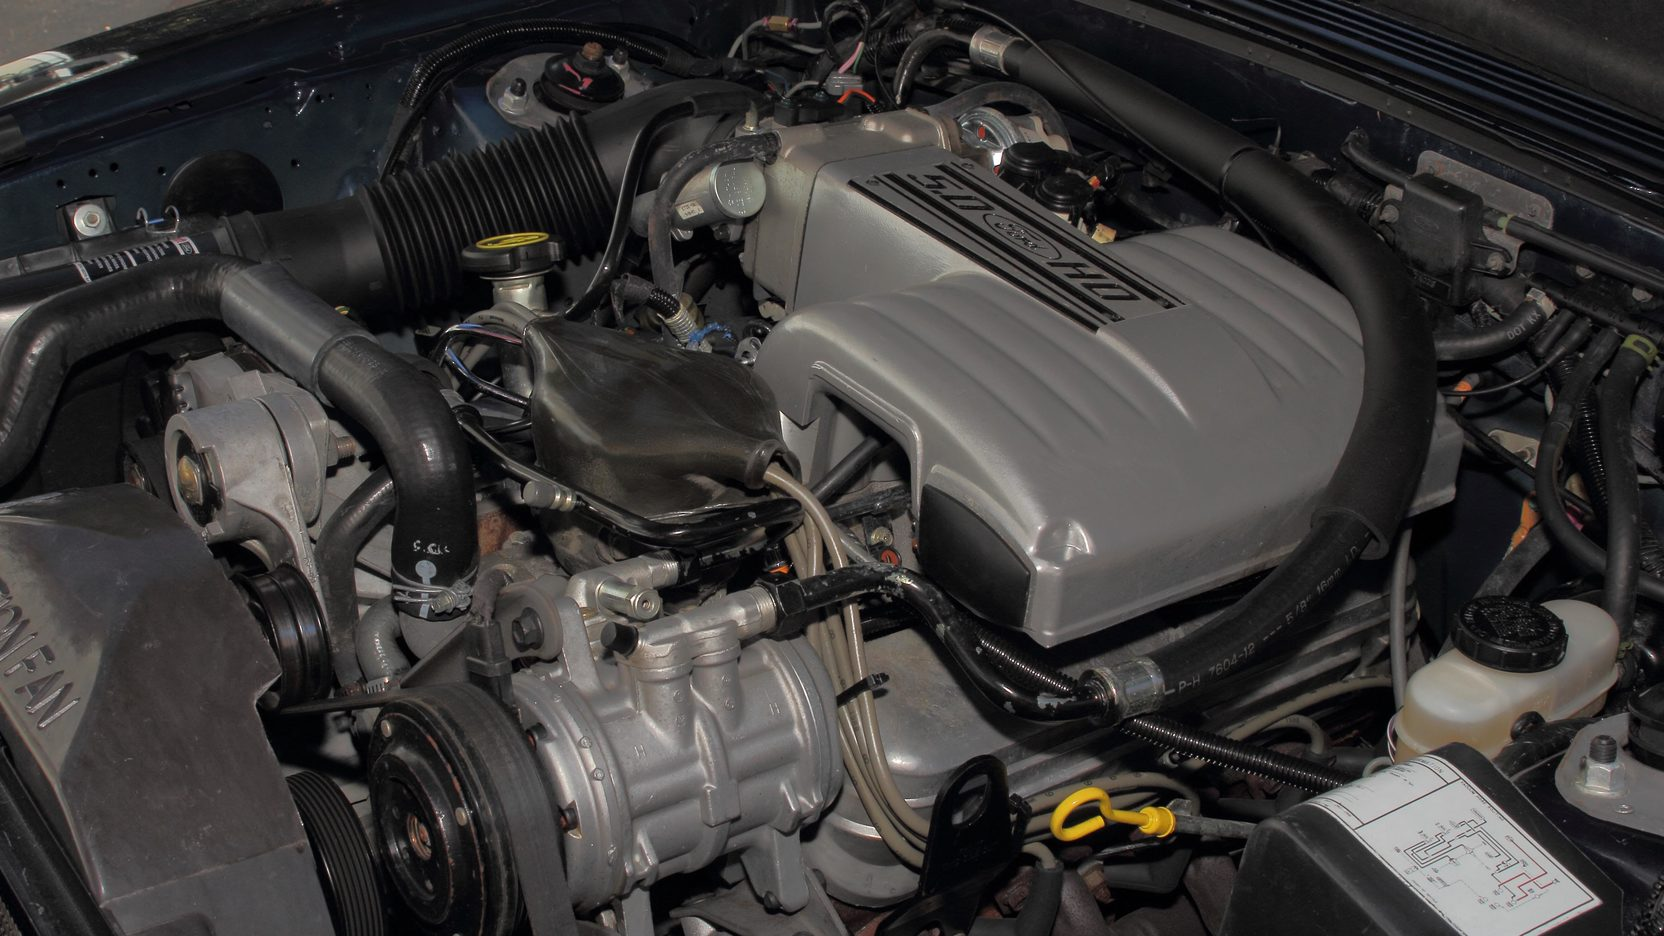 1988 Ford Mustang GT engine